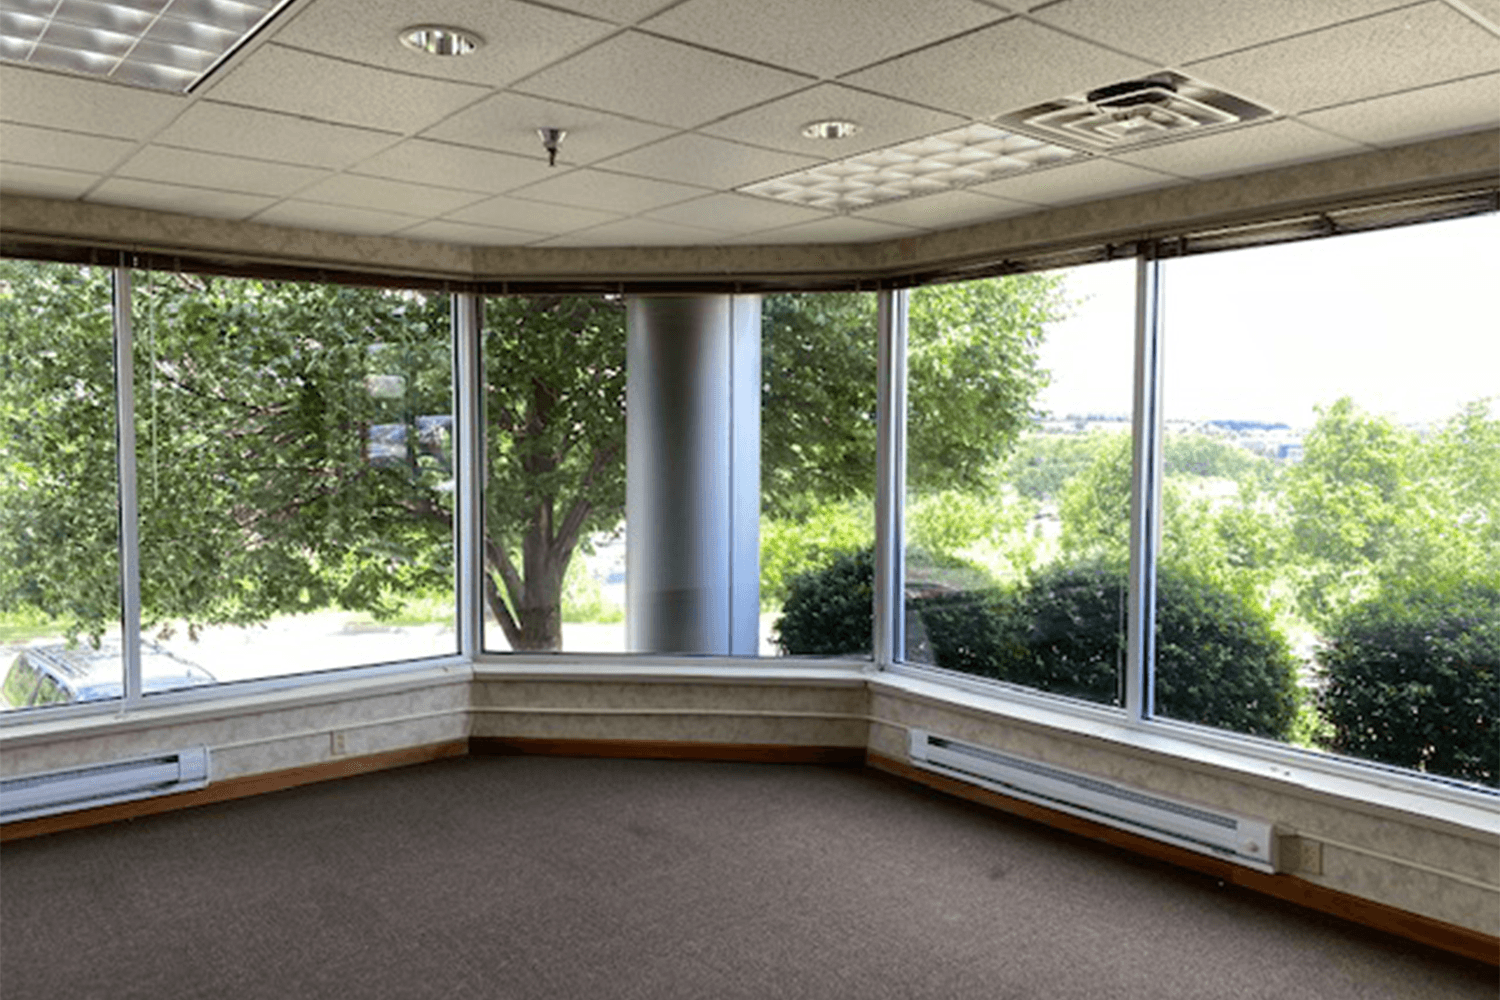 empty room with large windows that look out into trees and bushes